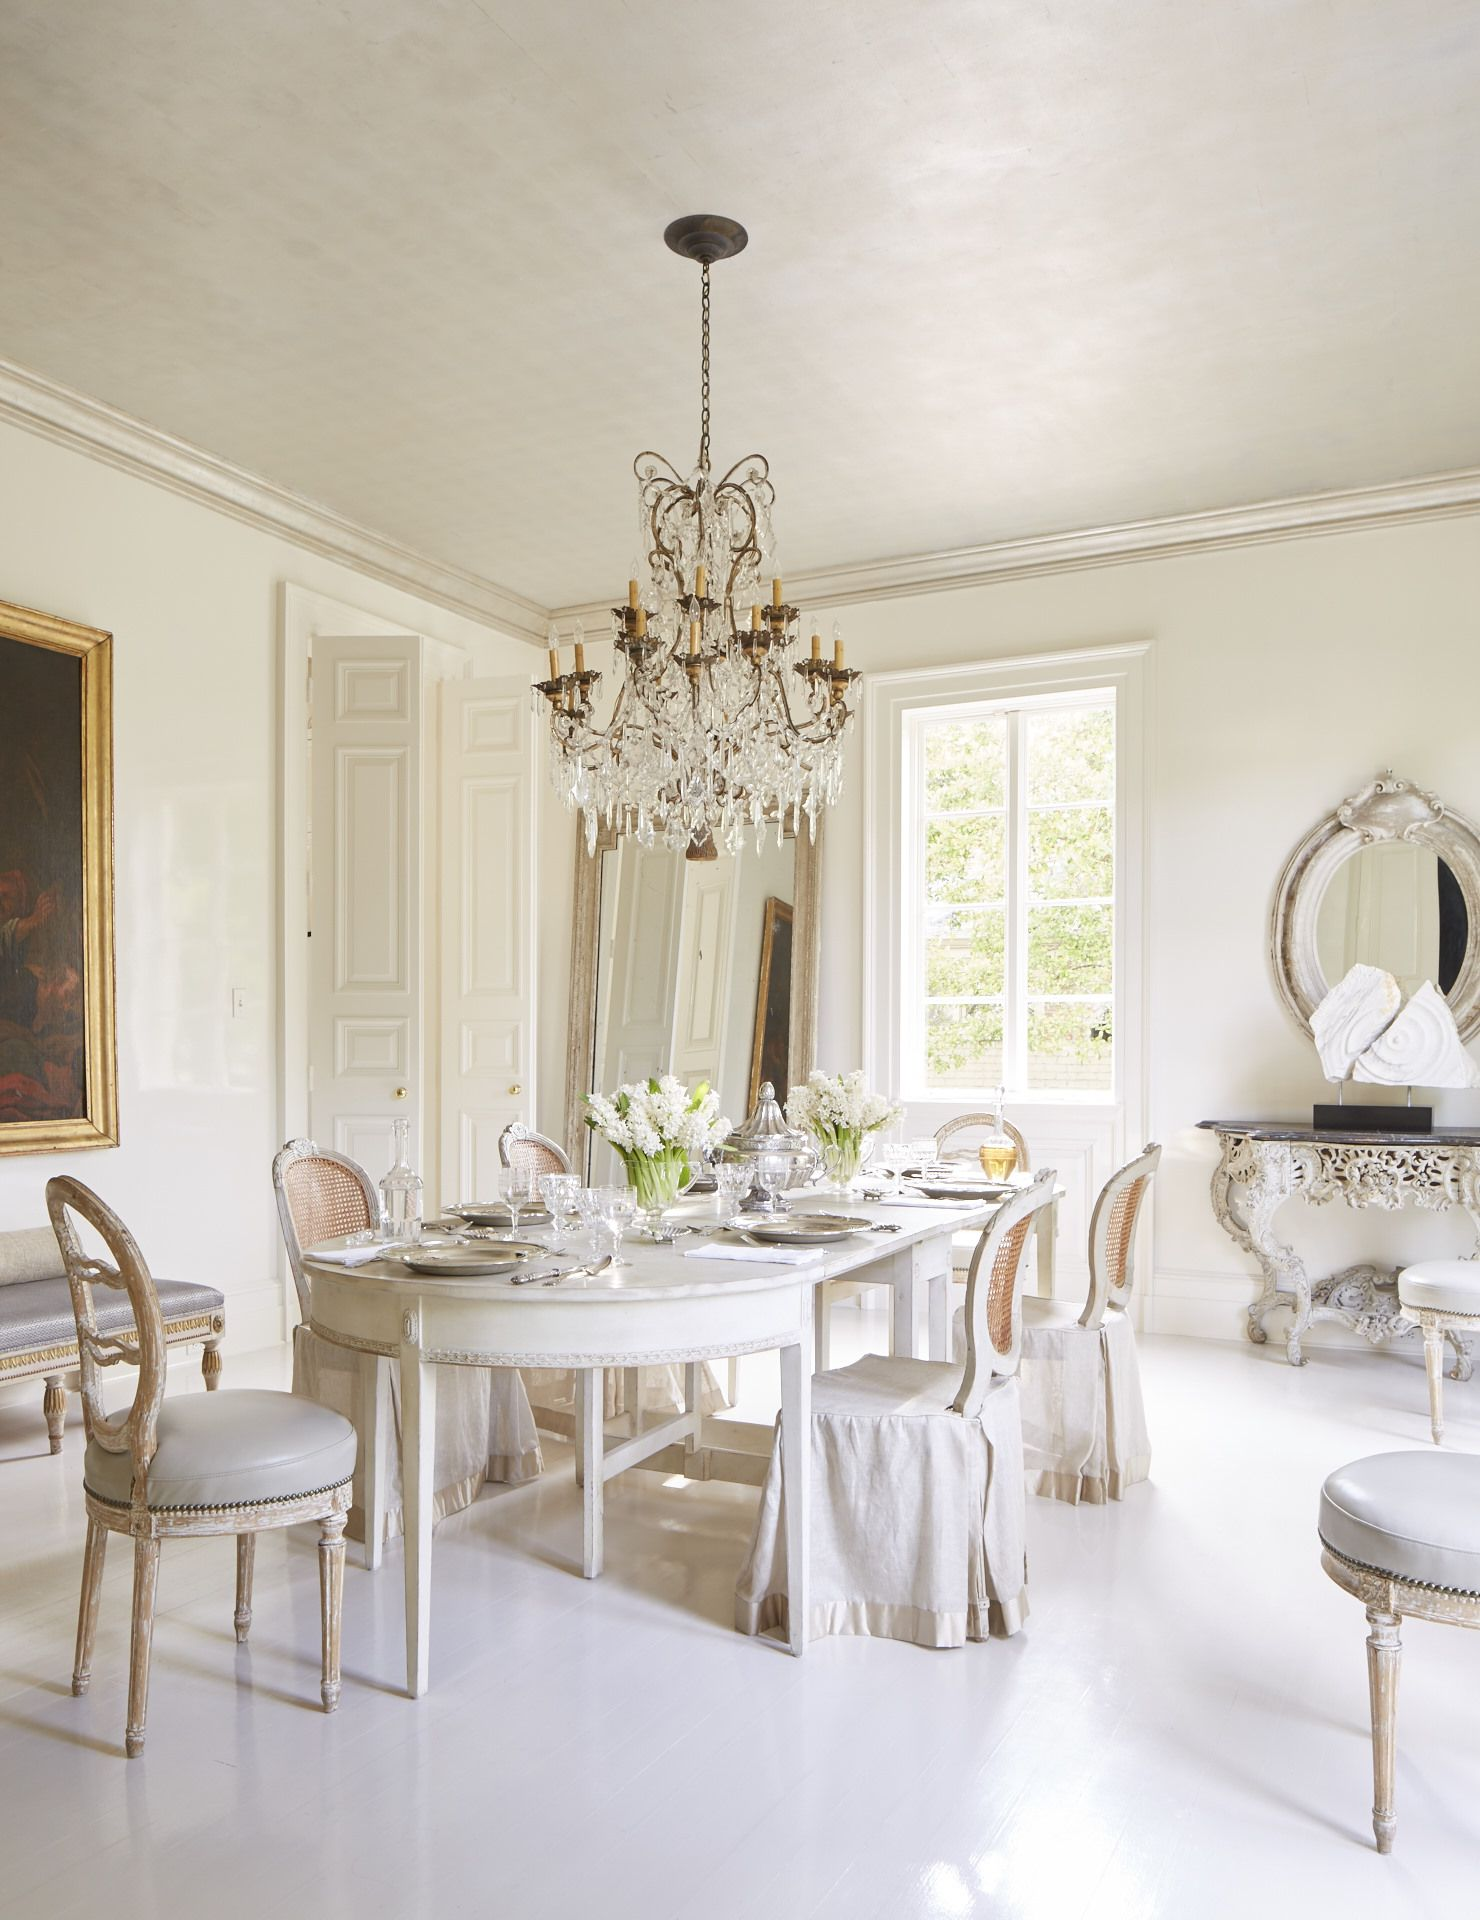 Kitchen Dining Interior Design: Neoclassical Dining